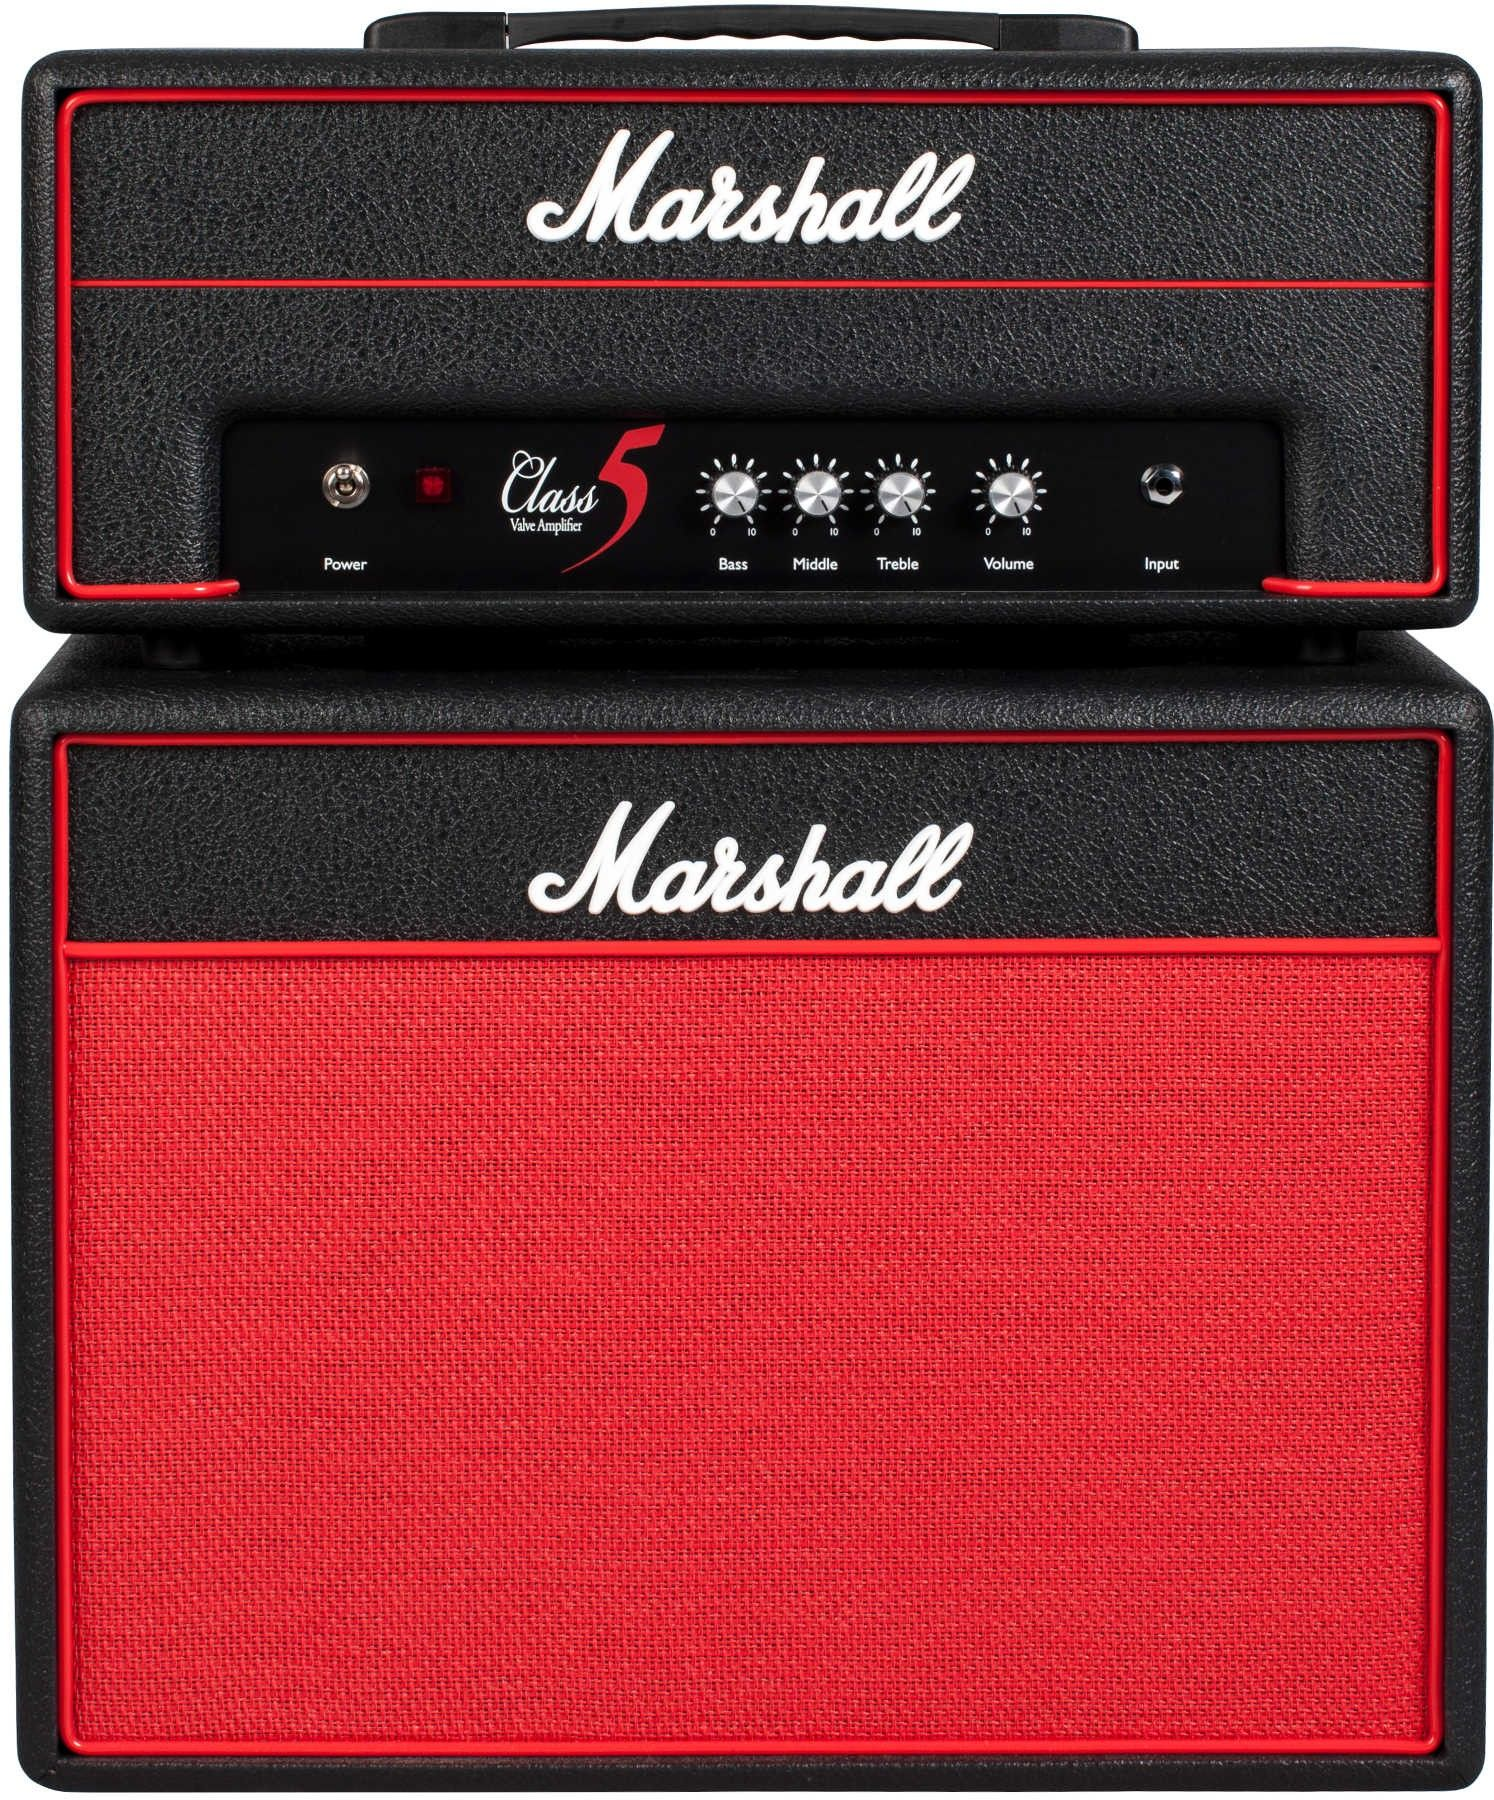 Class 5 red marshall stack google search guitar amp